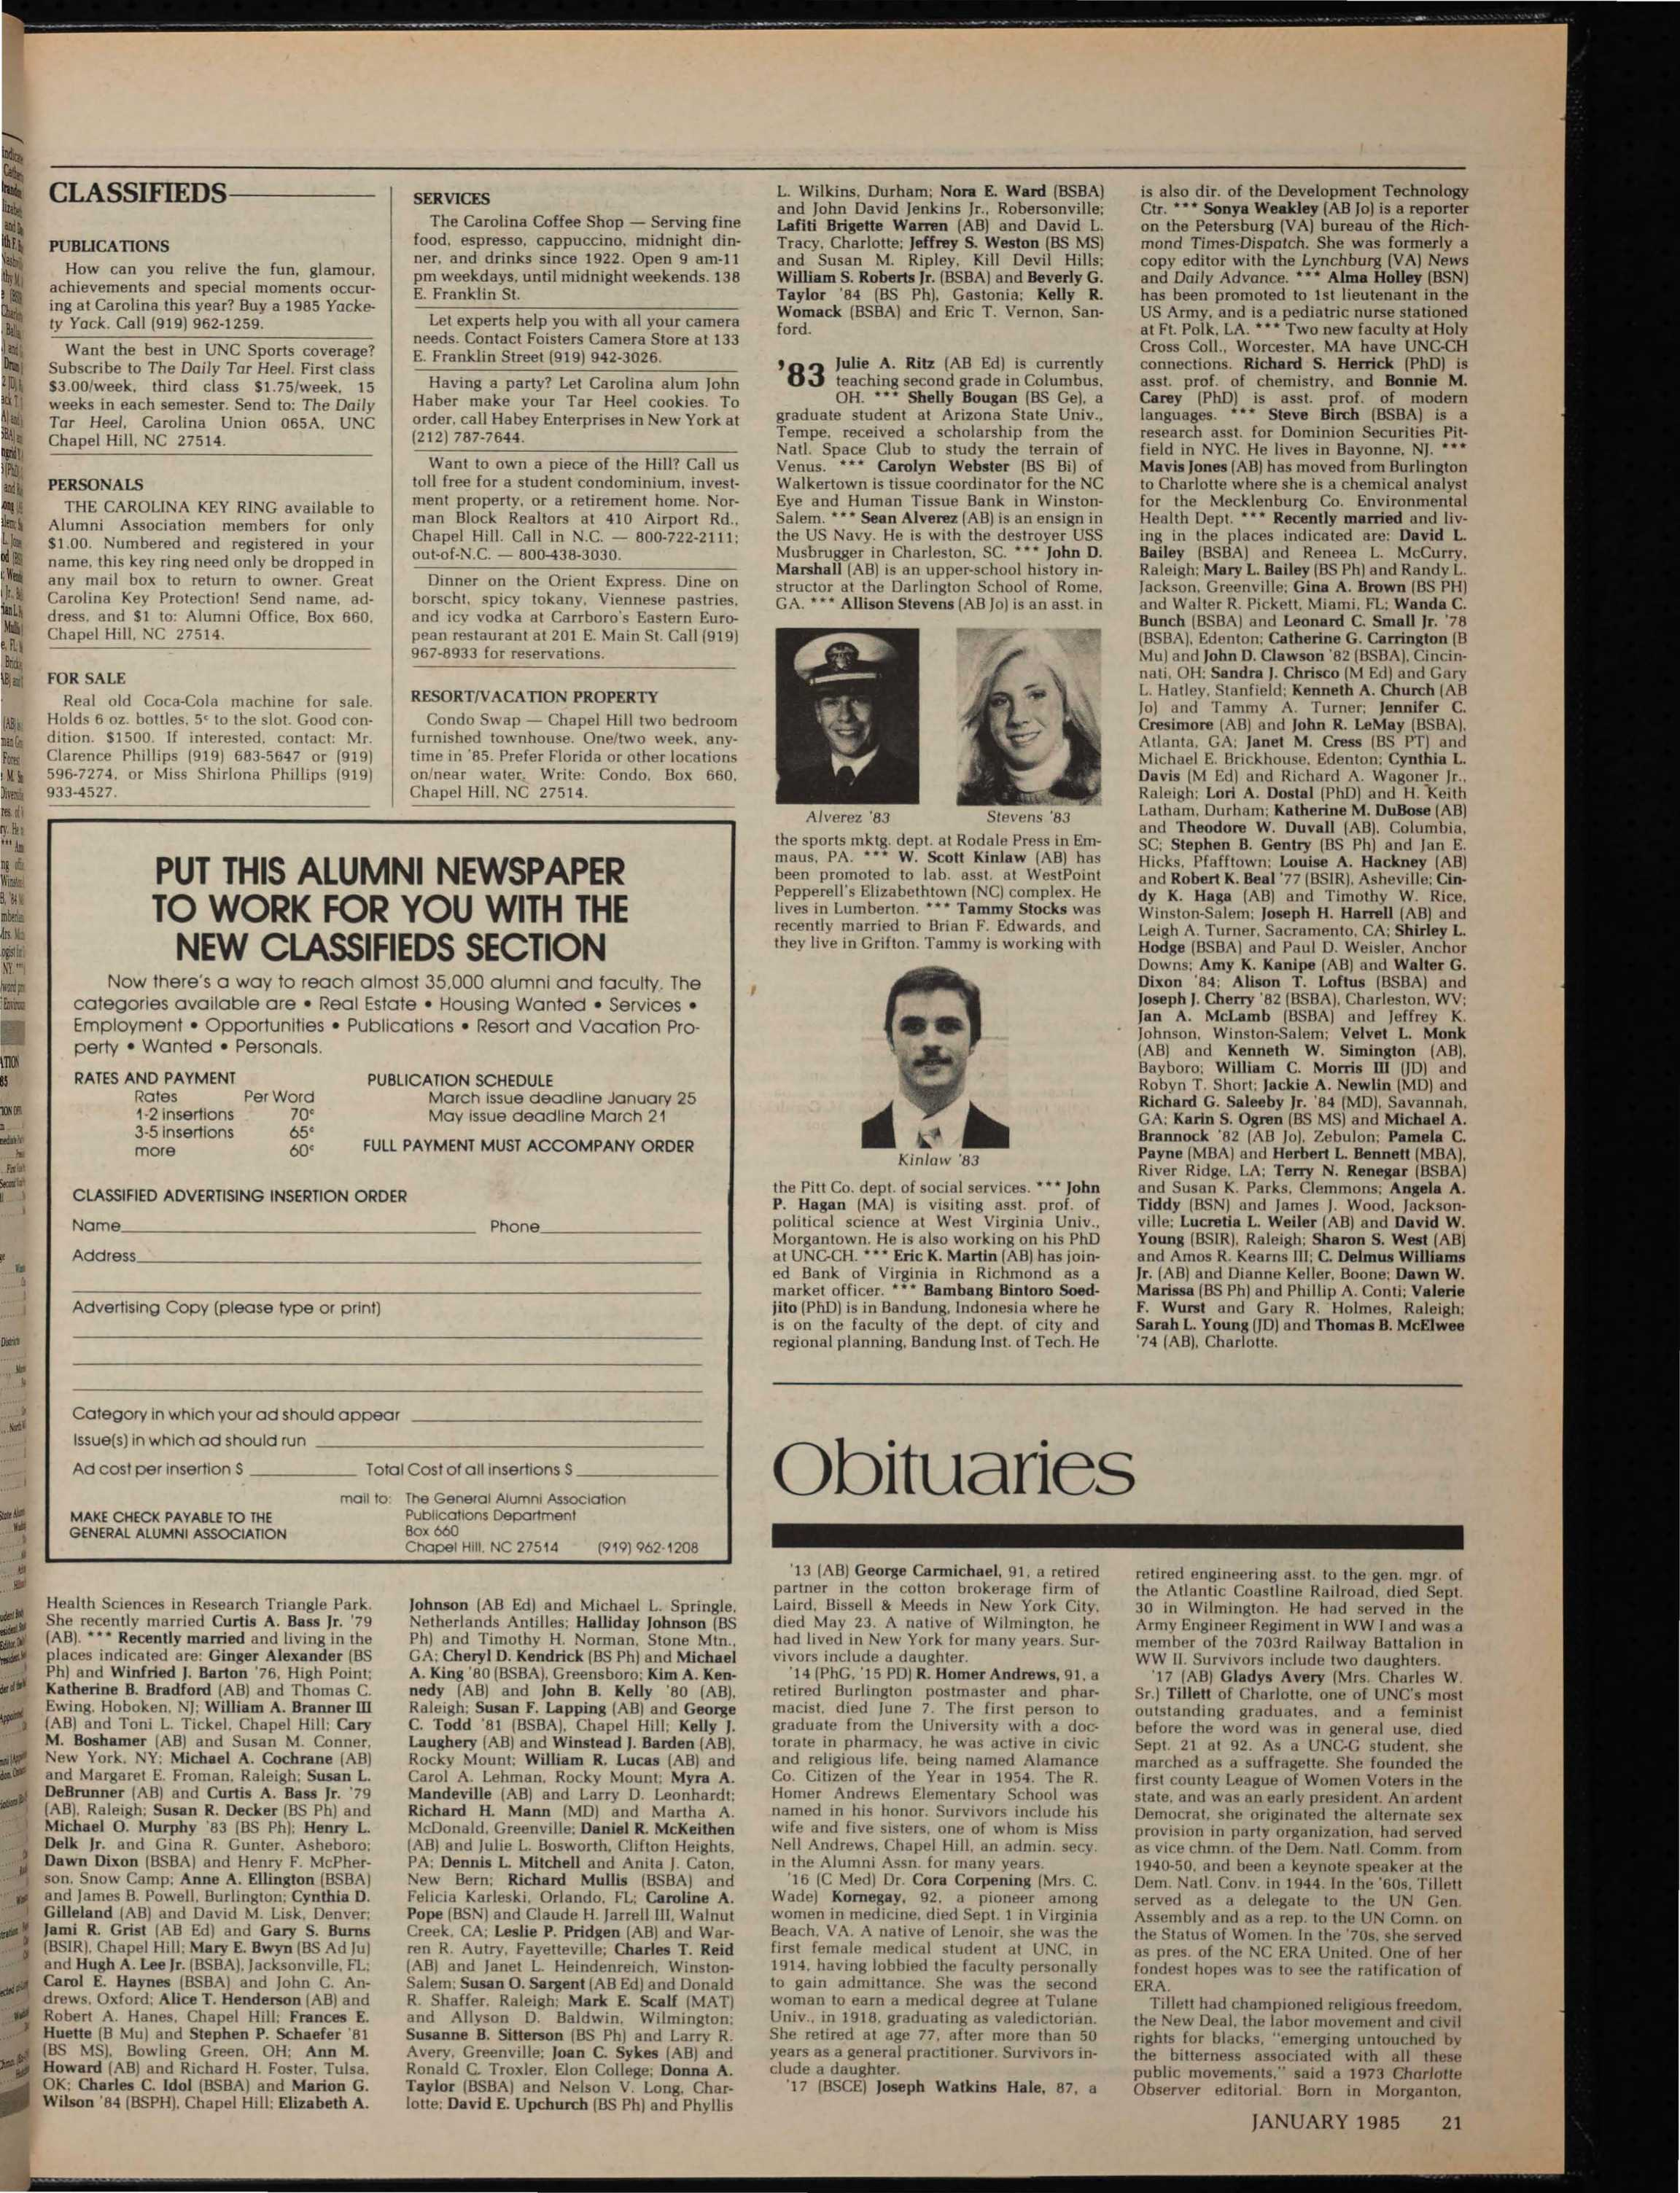 The University Report - January 1985 - page 21